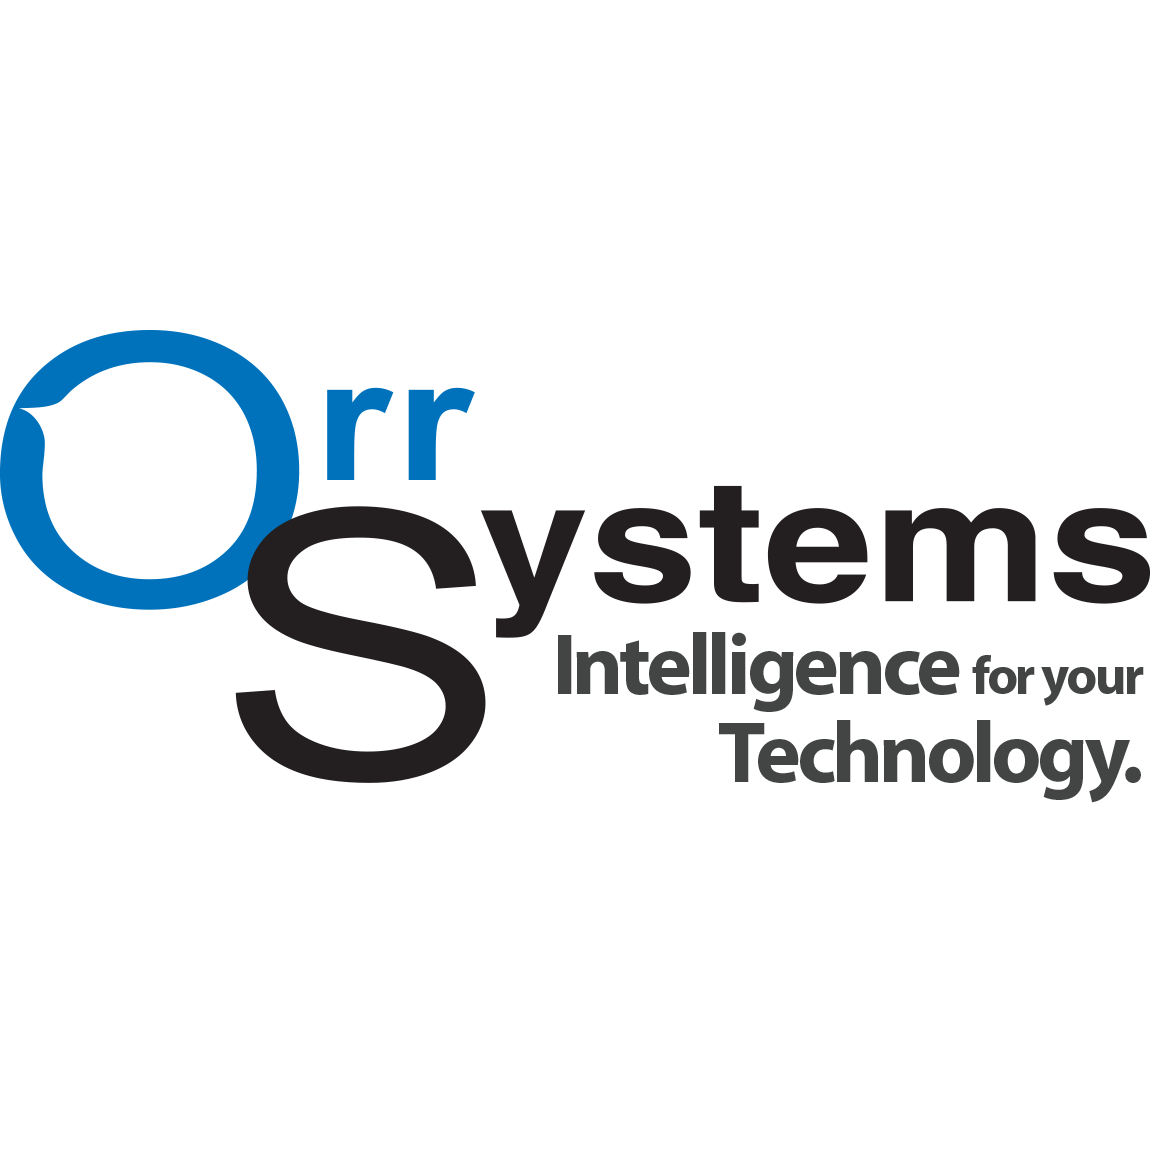 Orr Systems